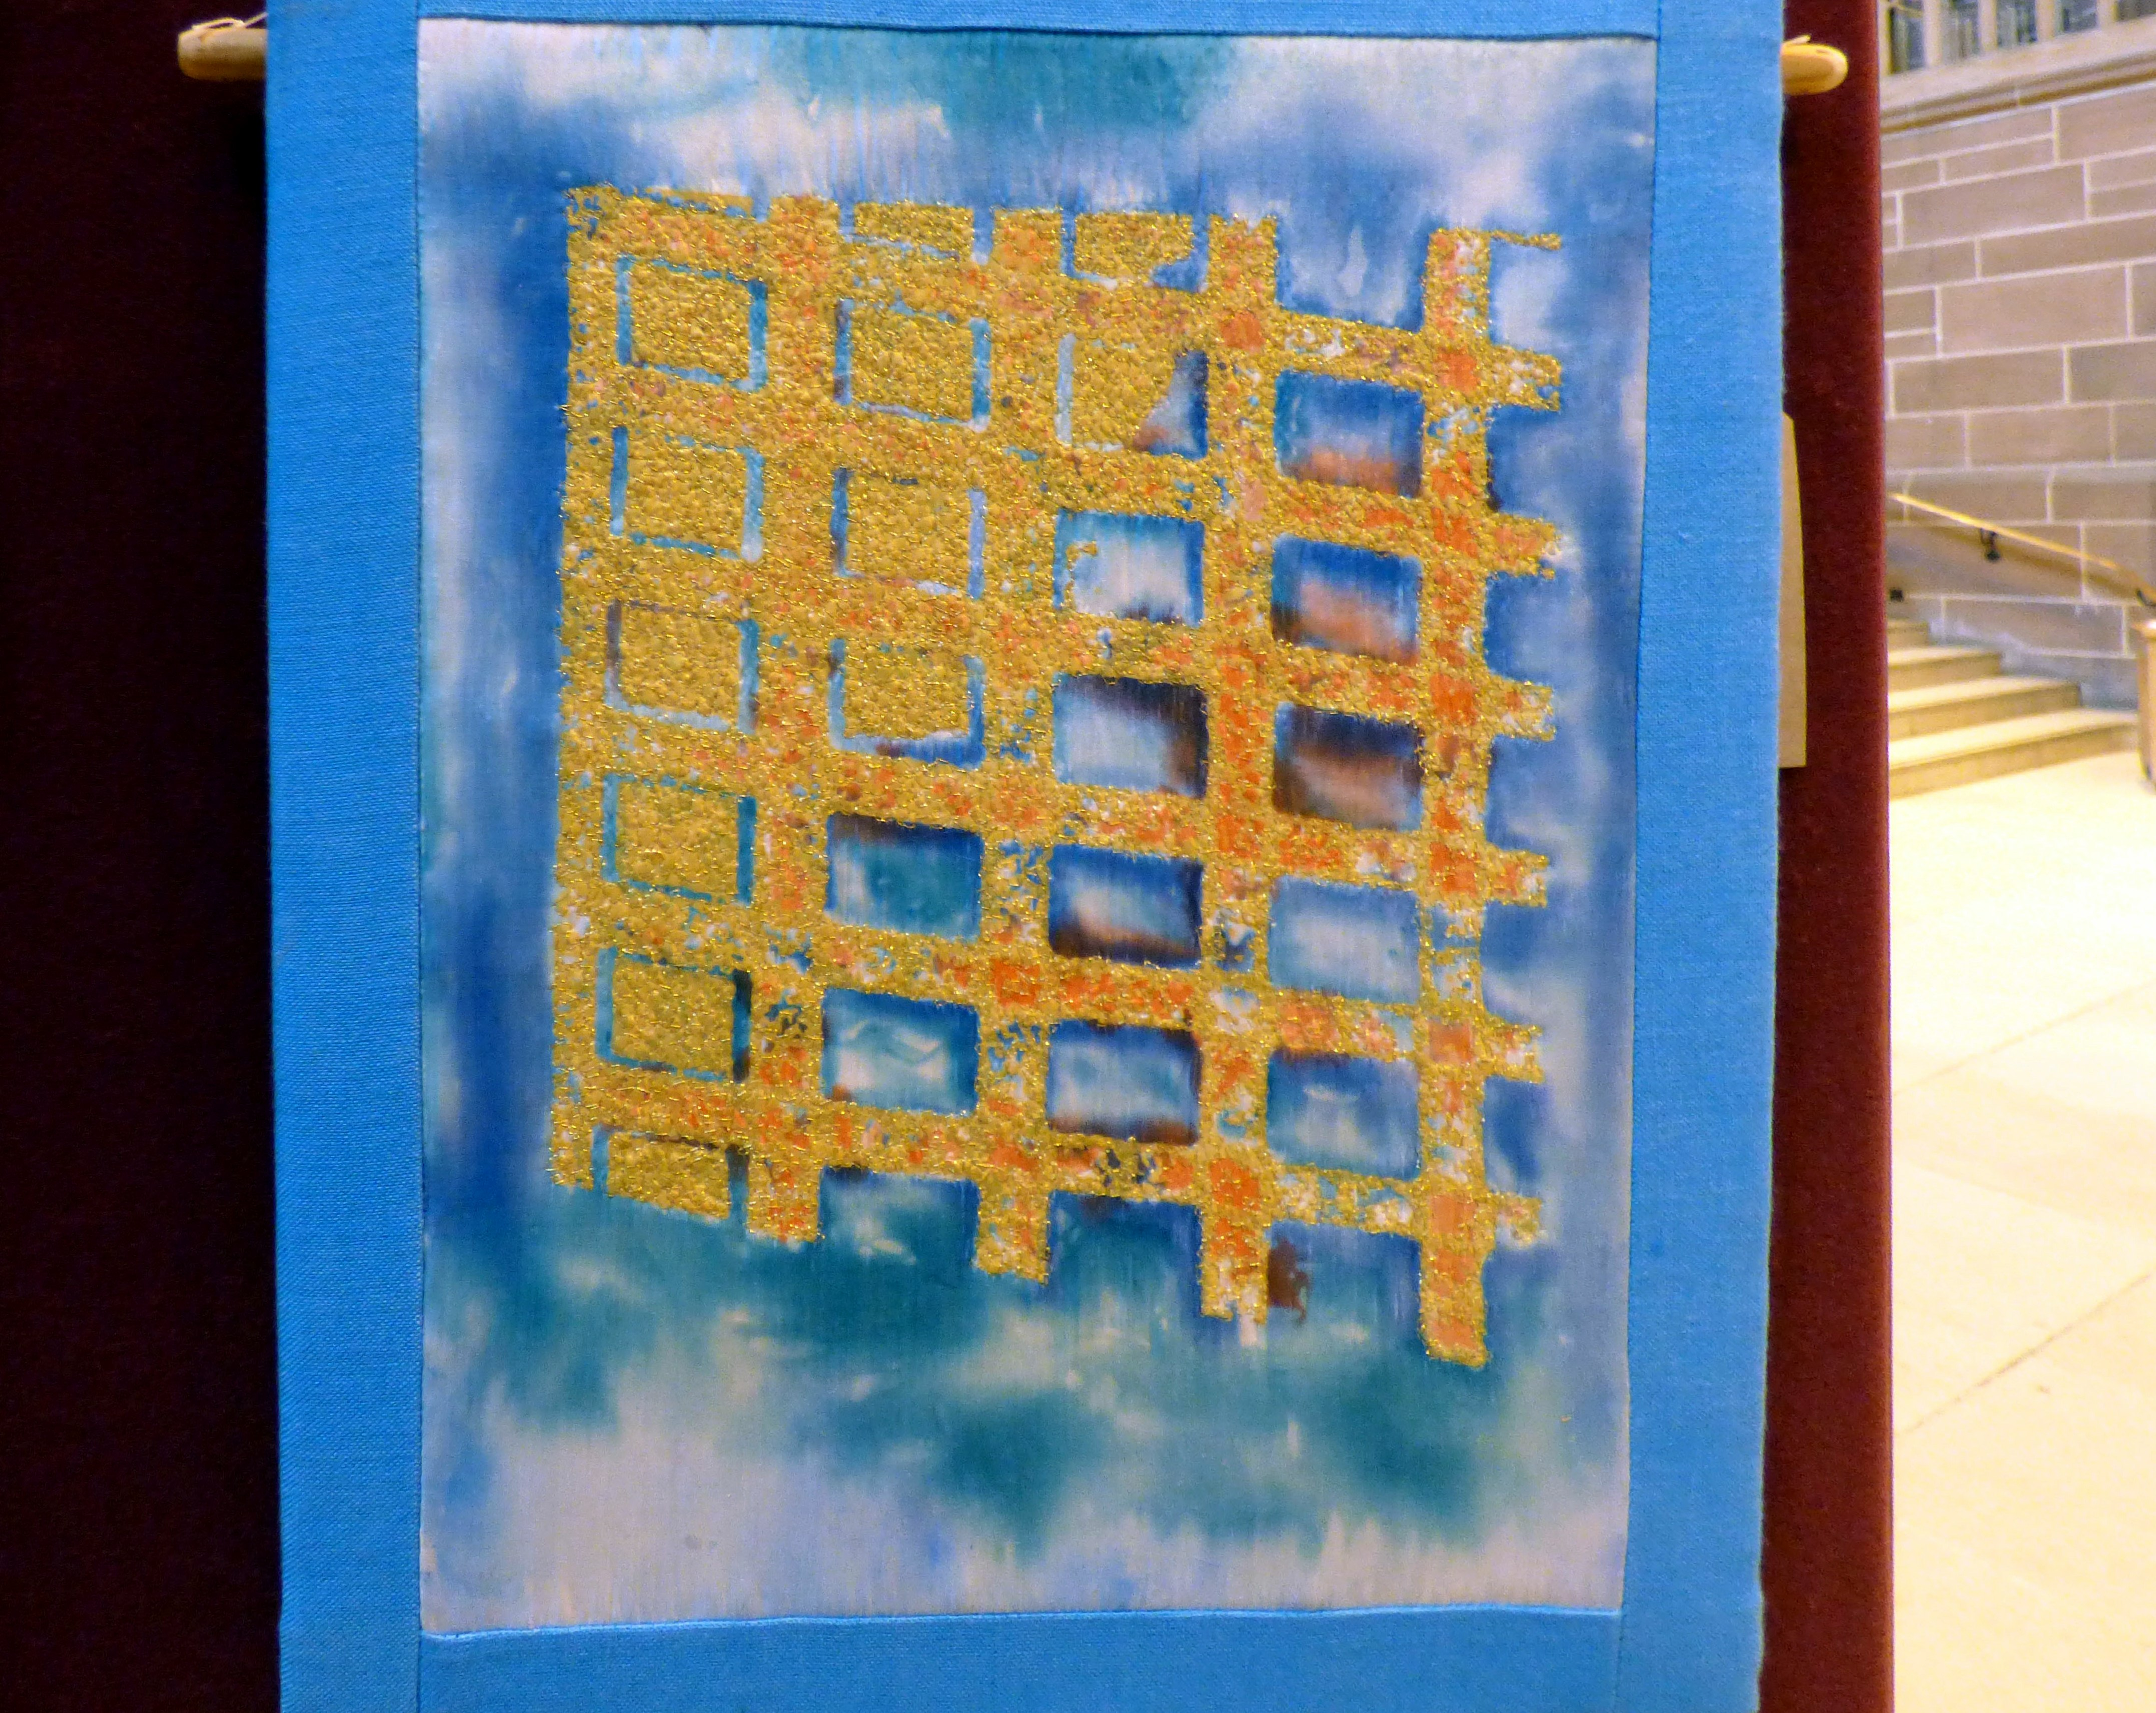 REFLECTIONS by Elsie Watkins at 60 Glorious Years exhibition 2016